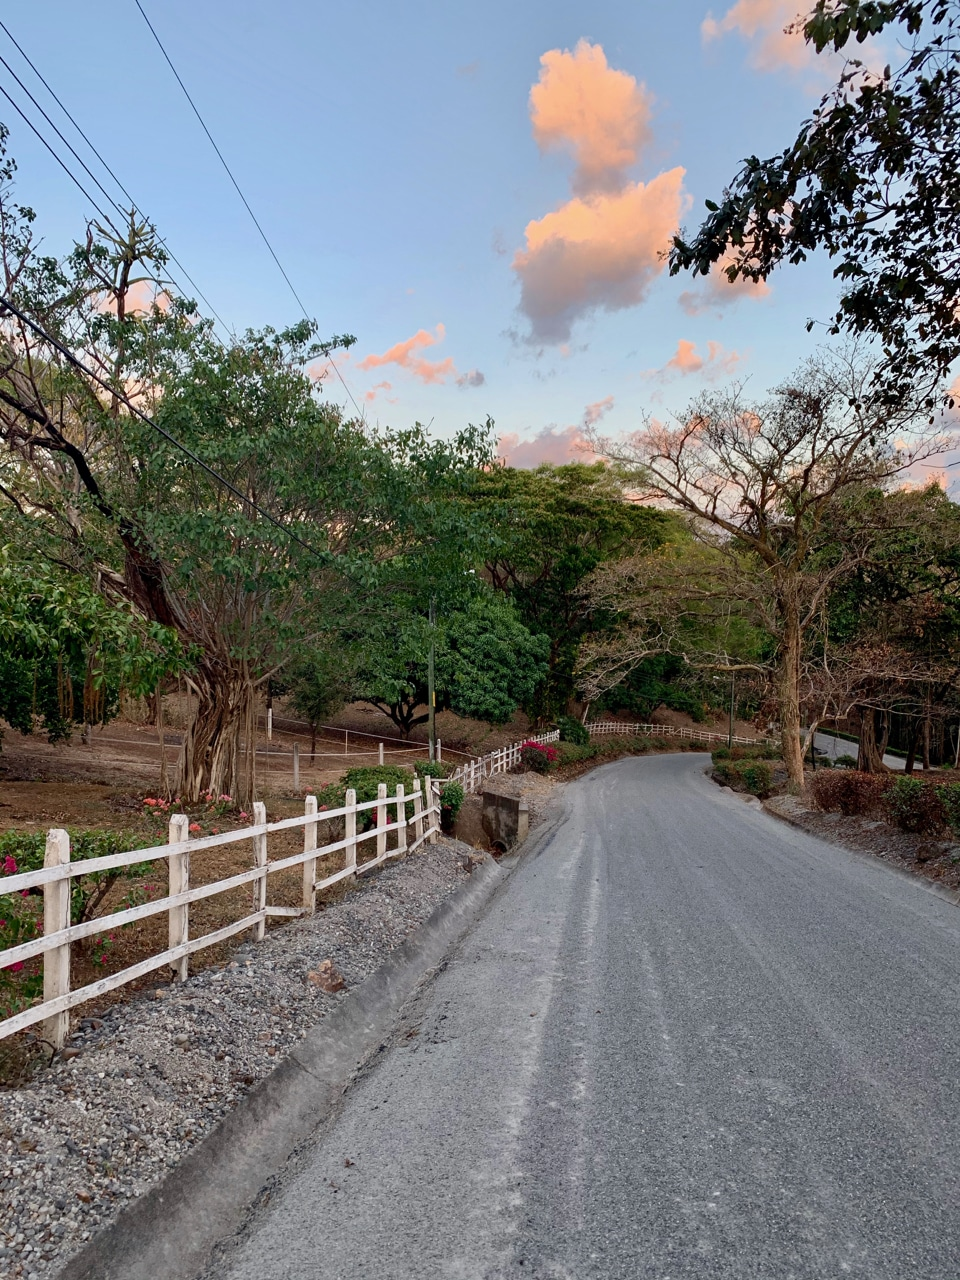 Costa Rica Orotina 11 Lots for Sale from 4,000M2 to 6,000M2